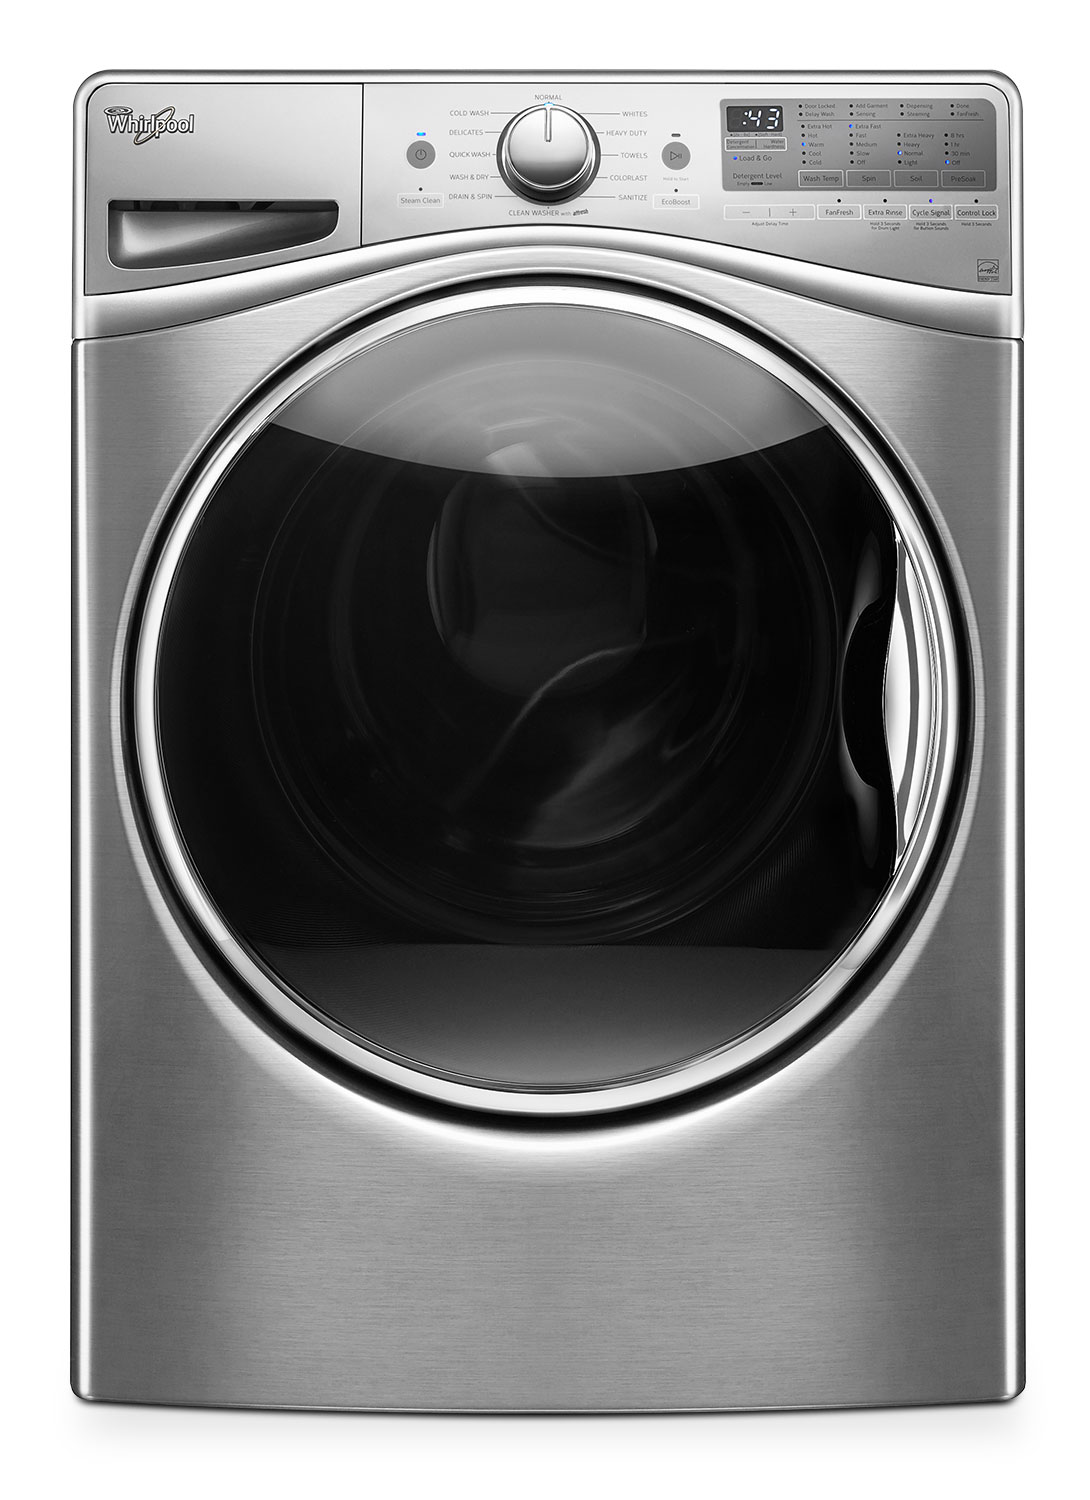 Whirlpool Diamond Steel Front-Load Washer (5.2 Cu. Ft.) - WFW92HEFU